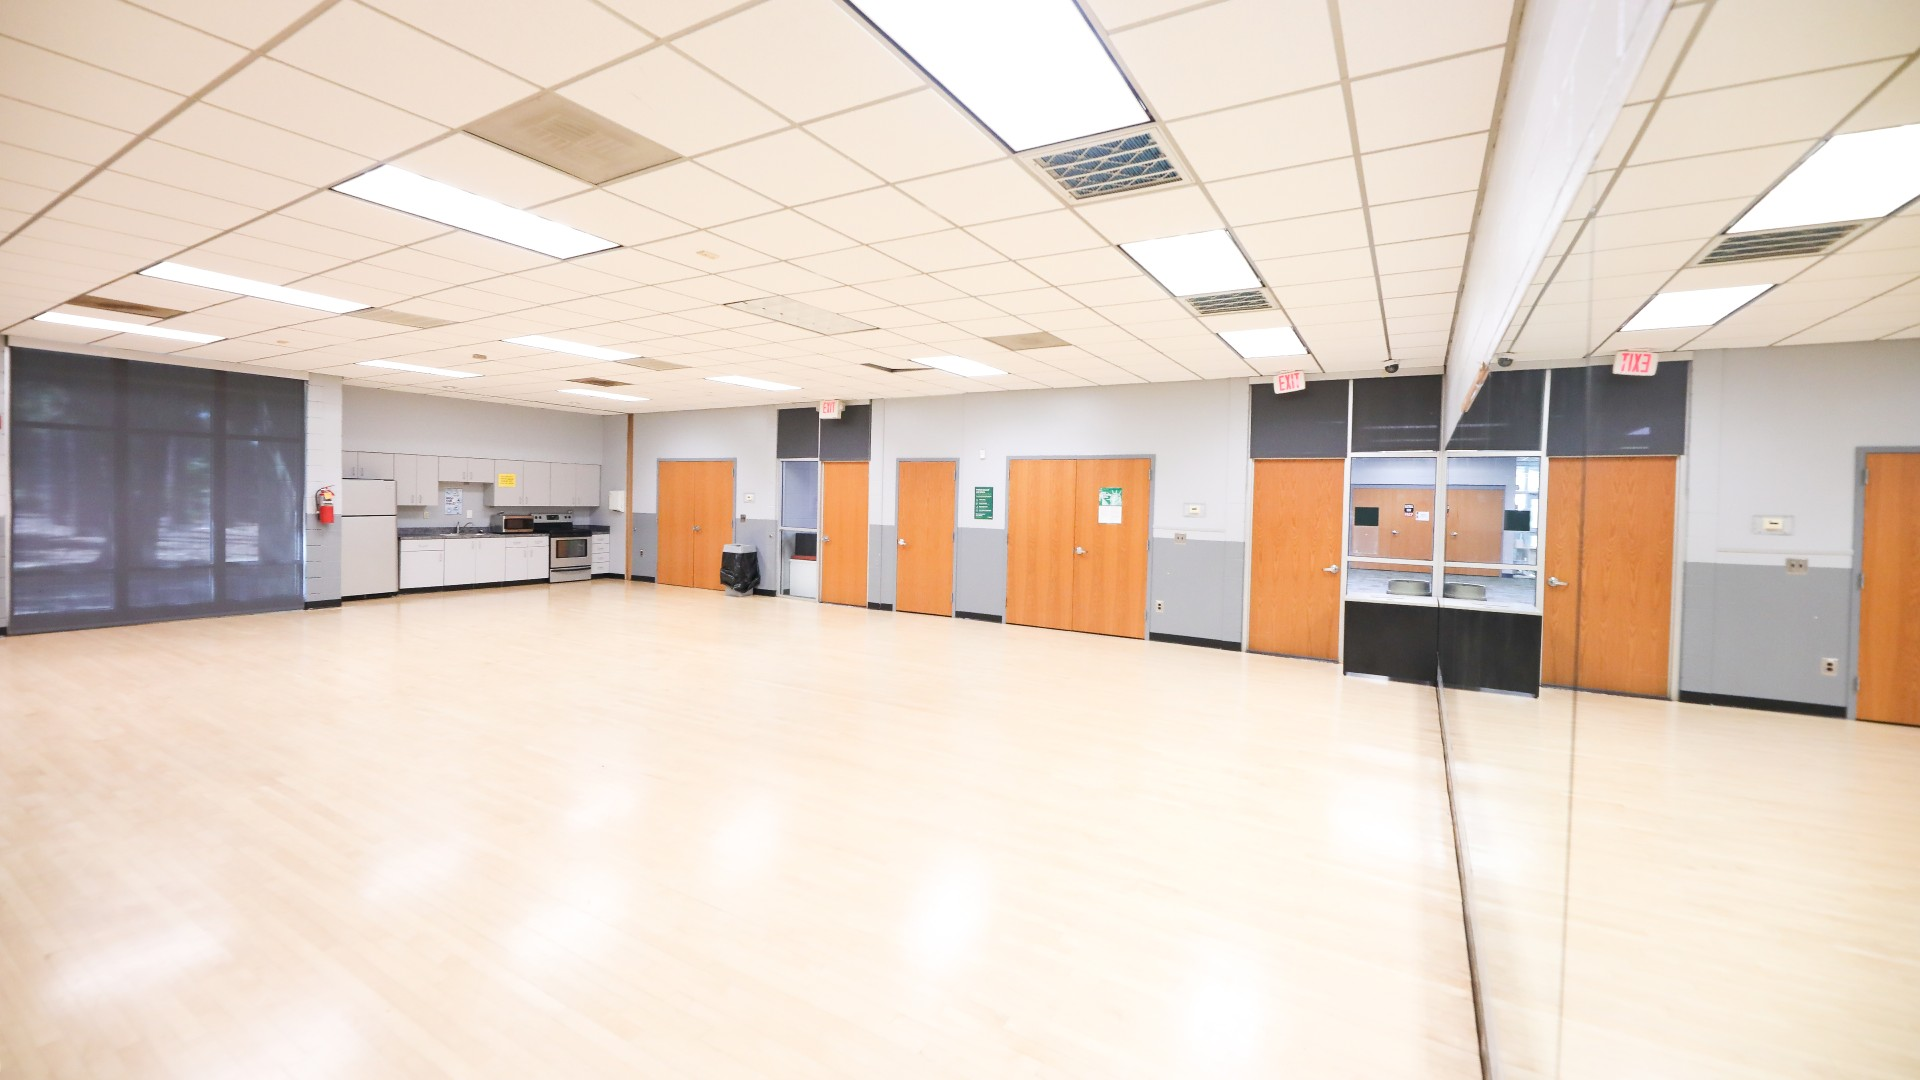 A large open dance studio type room with hardwood floors and a large mirorr.